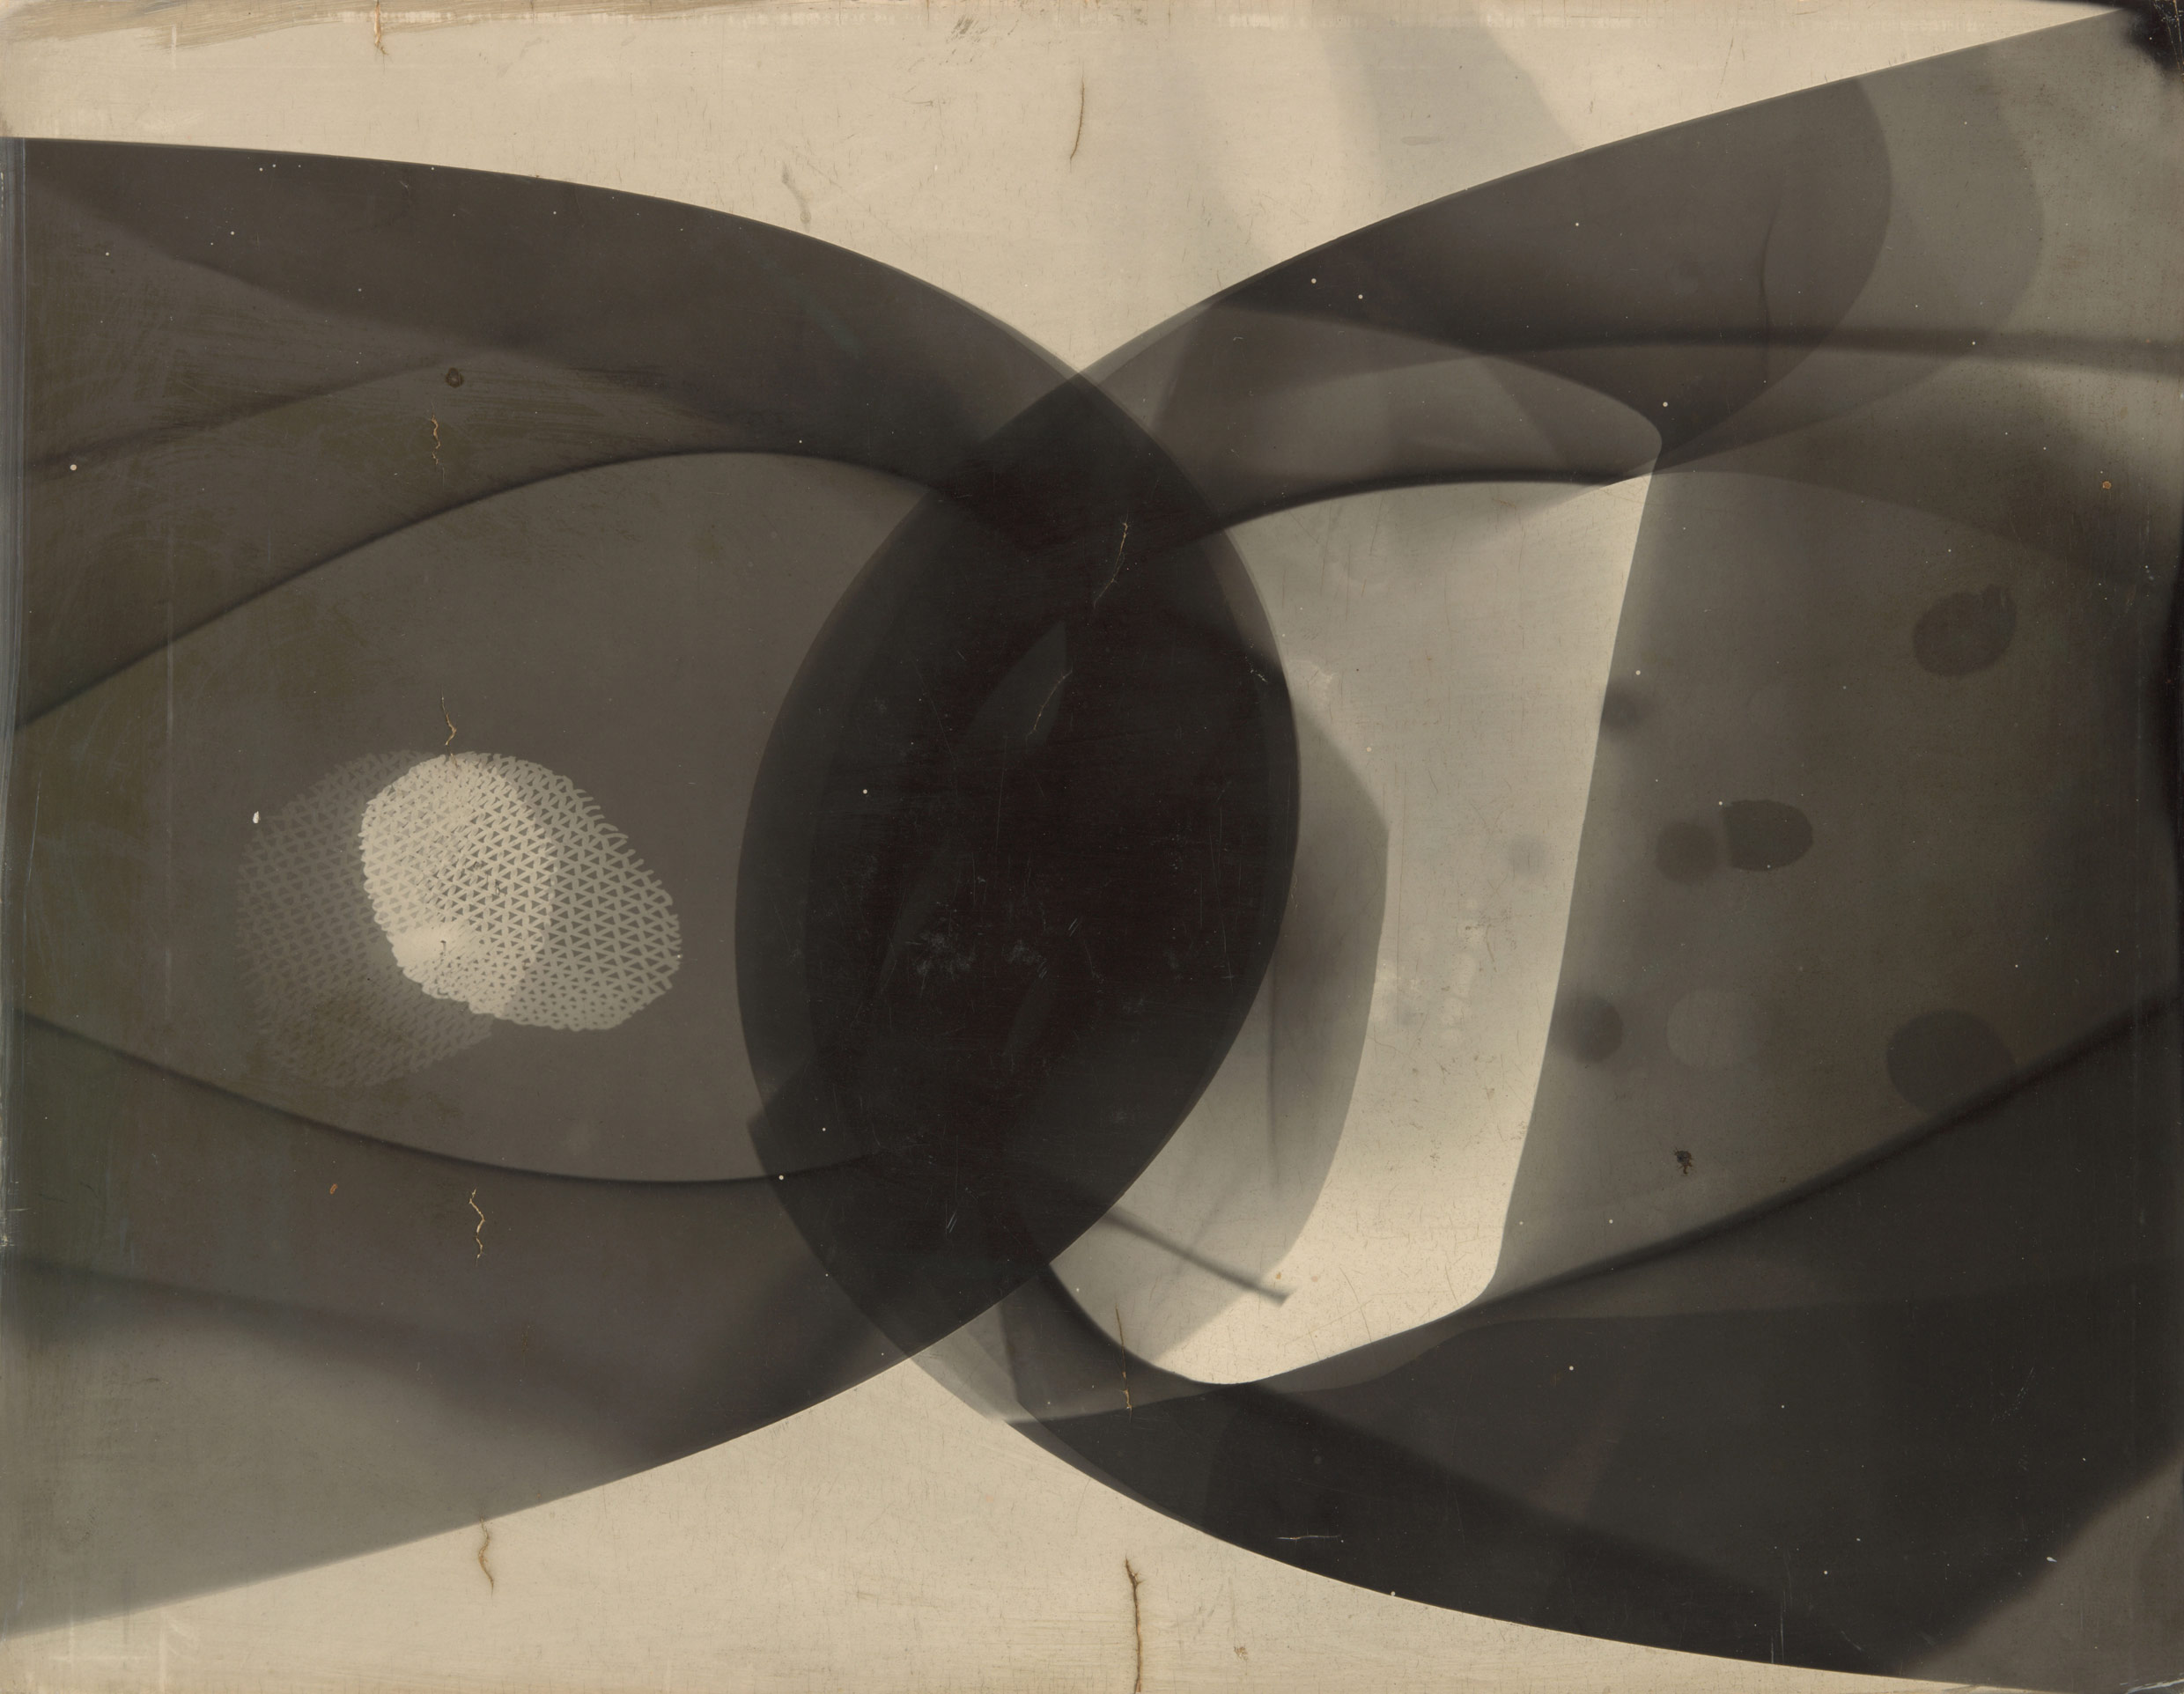 gen-press-moholy-nagy-photogram-1941